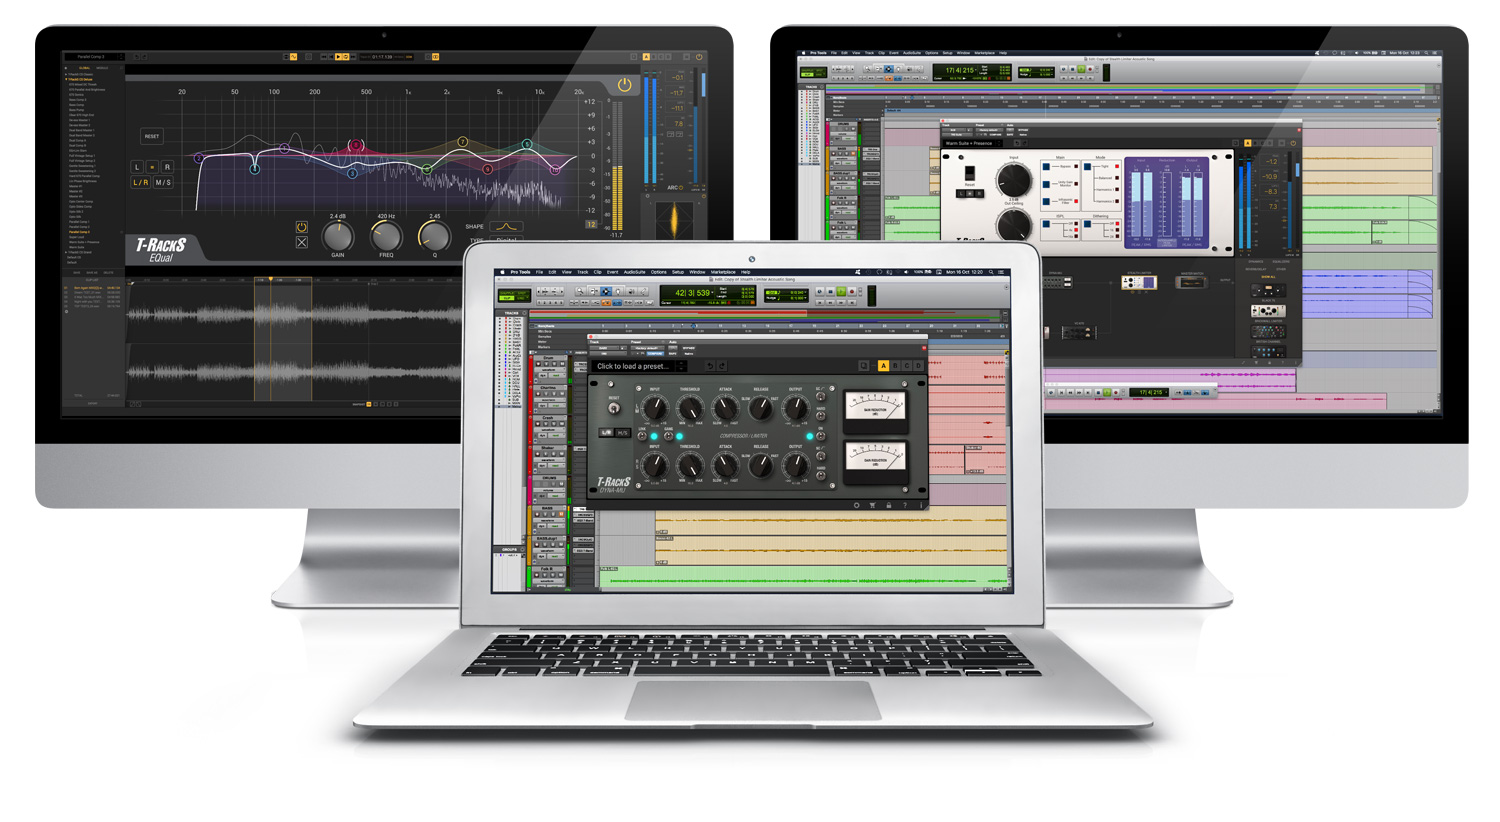 T-Racks Mastering software